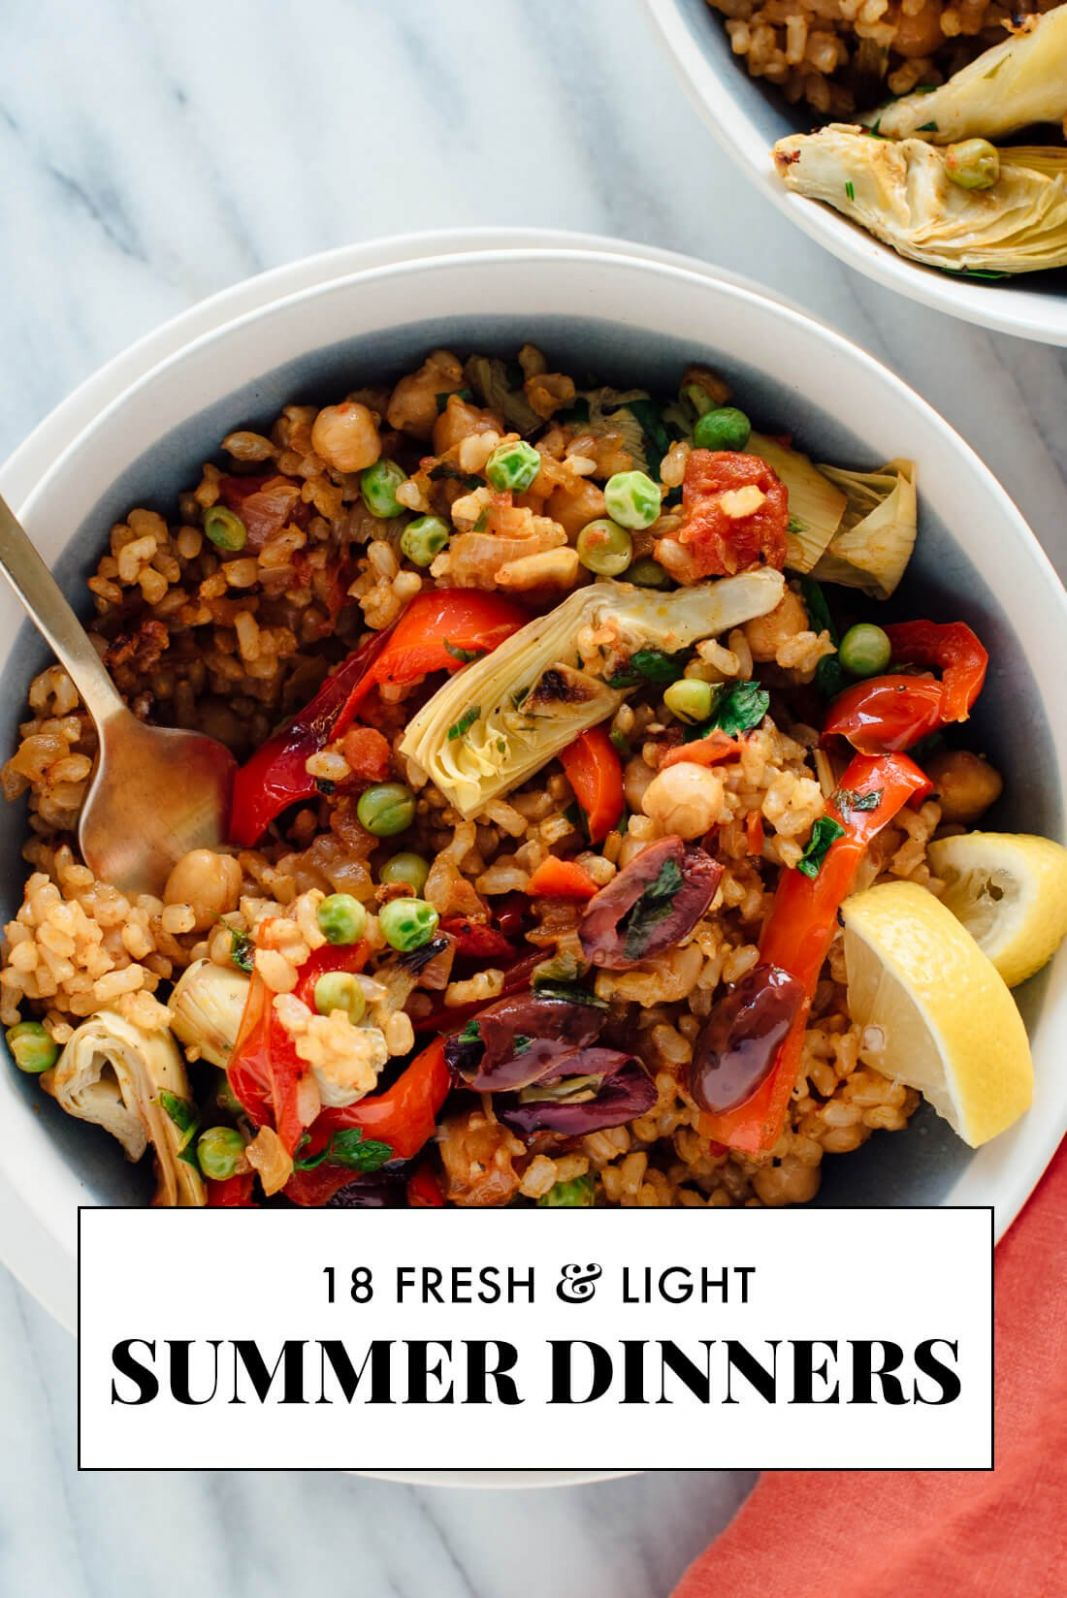 11 Light Summer Dinner Recipes - Cookie and Kate - Summer Recipes For Dinner